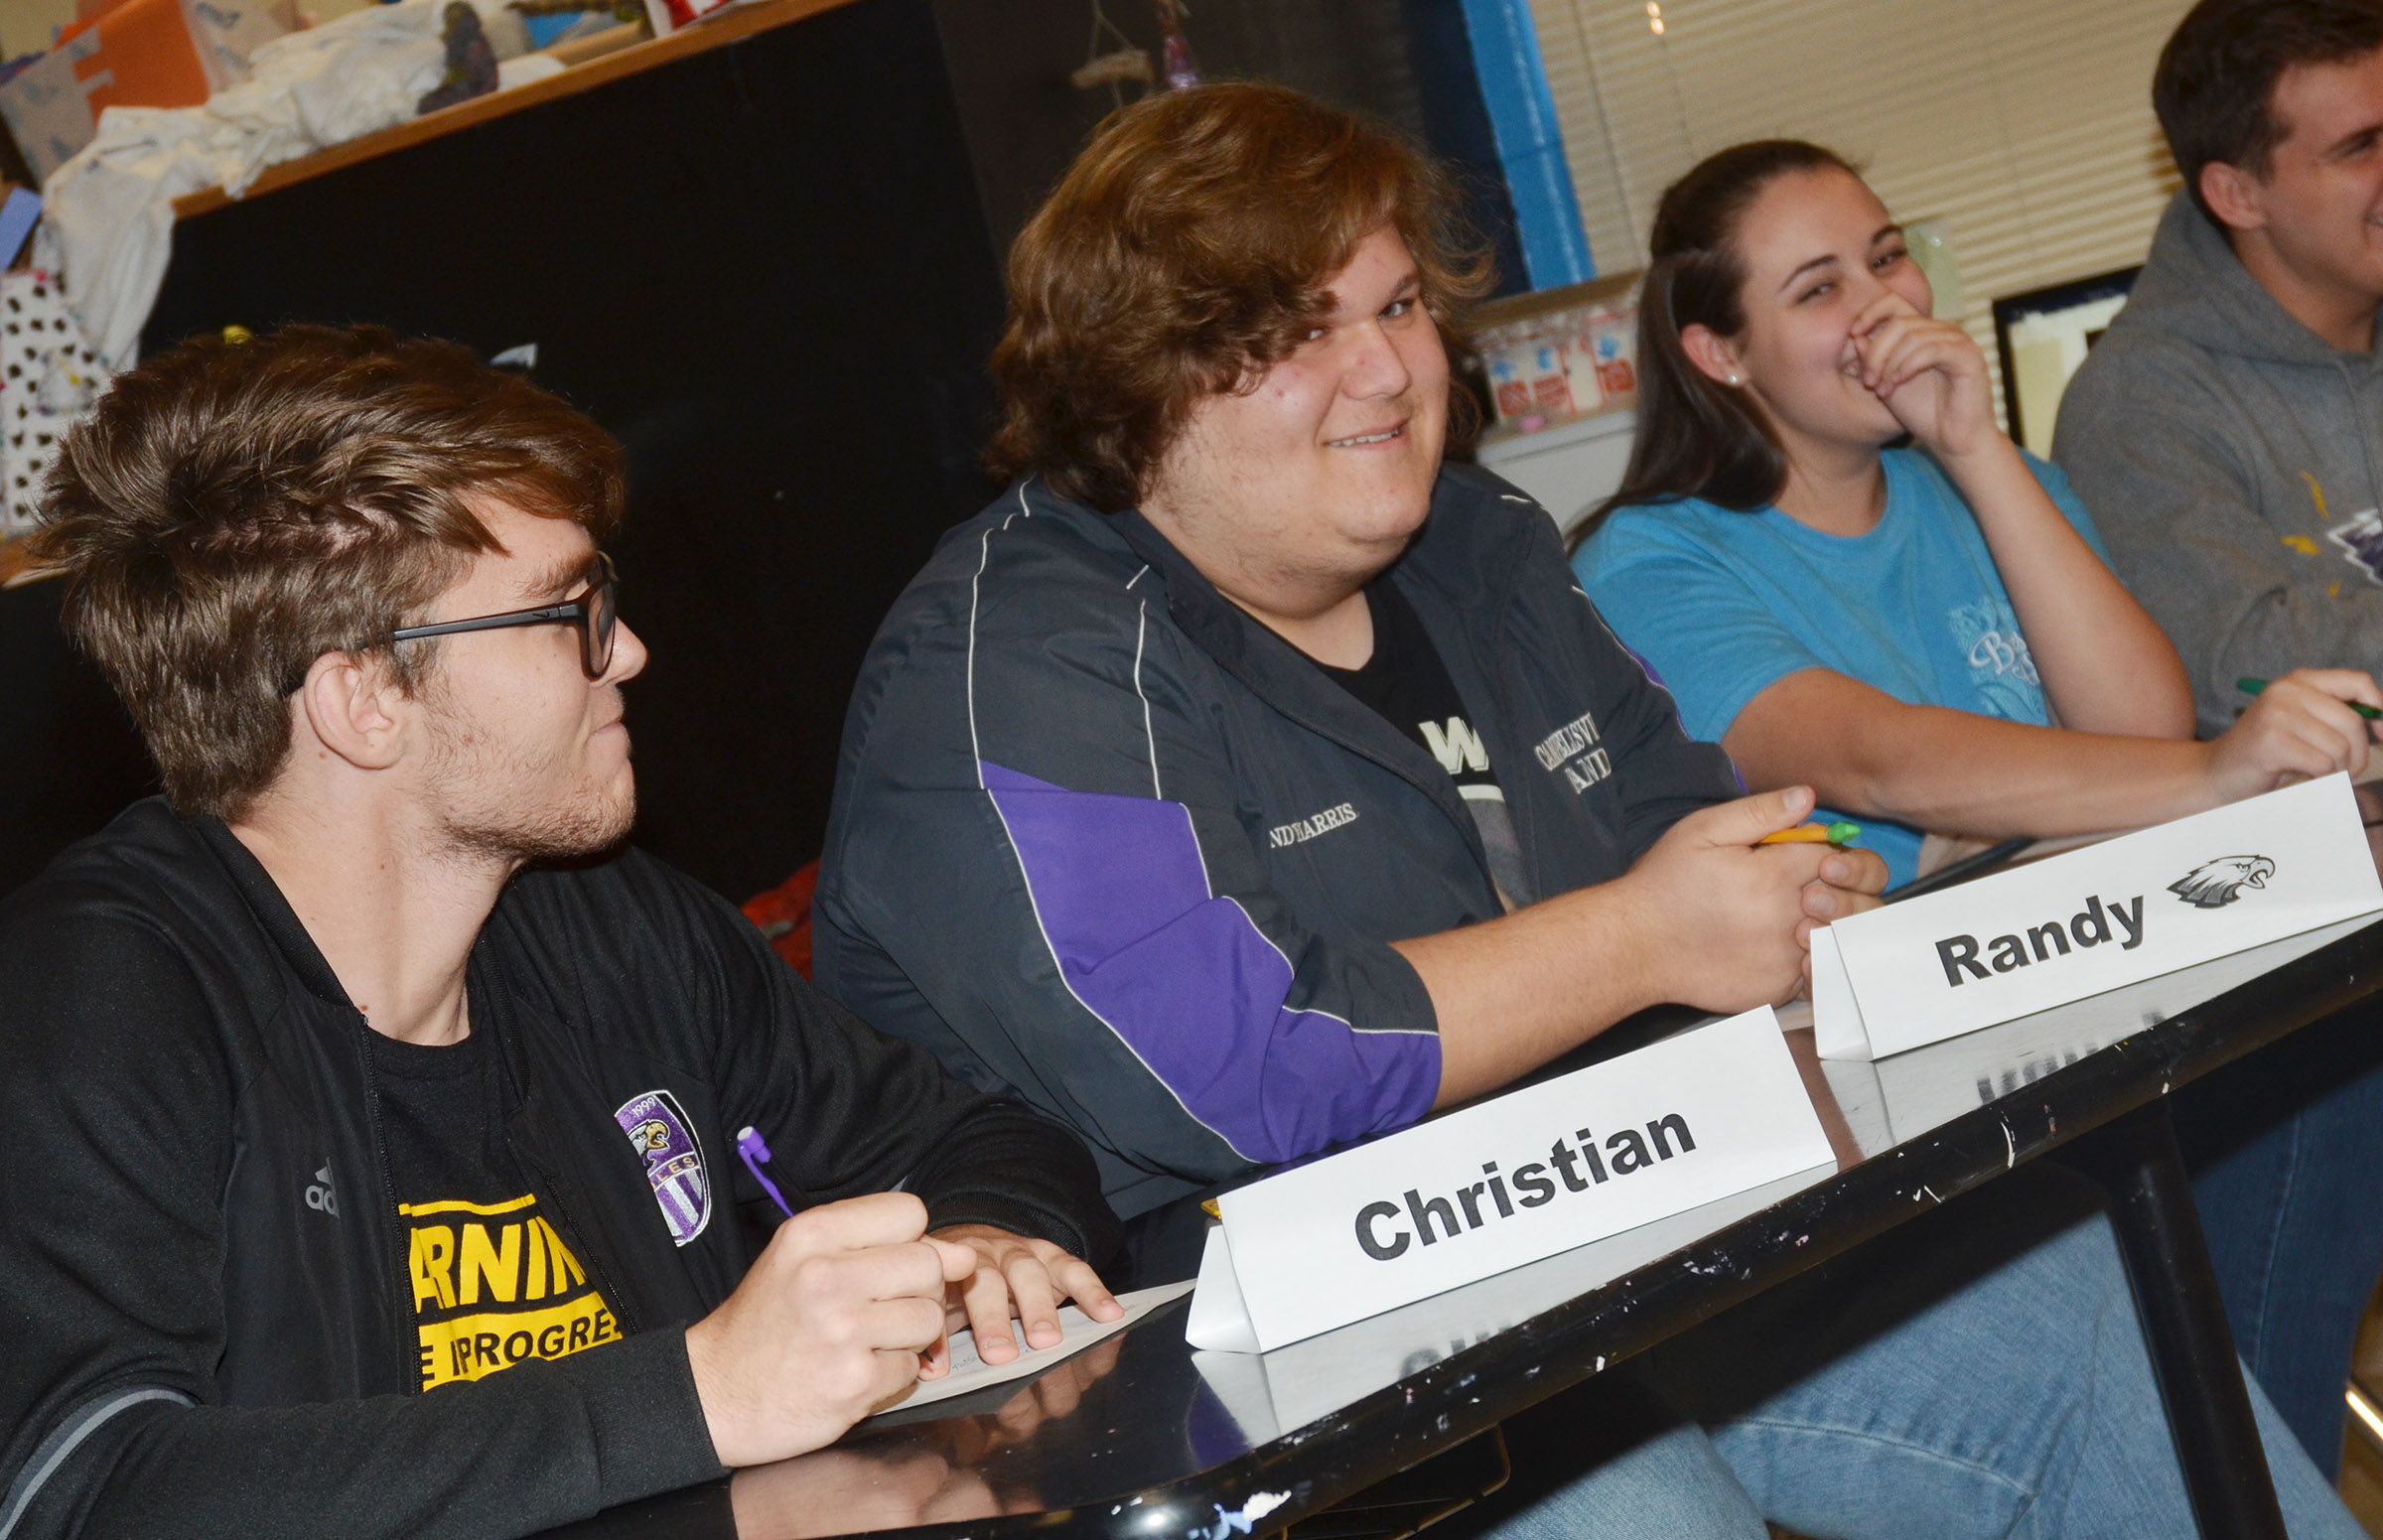 From left, CHS senior Christian Berry, juniors Randy Harris and Elizabeth Sullivan and senior Austin Fitzgerald share a laugh as they answer a question.